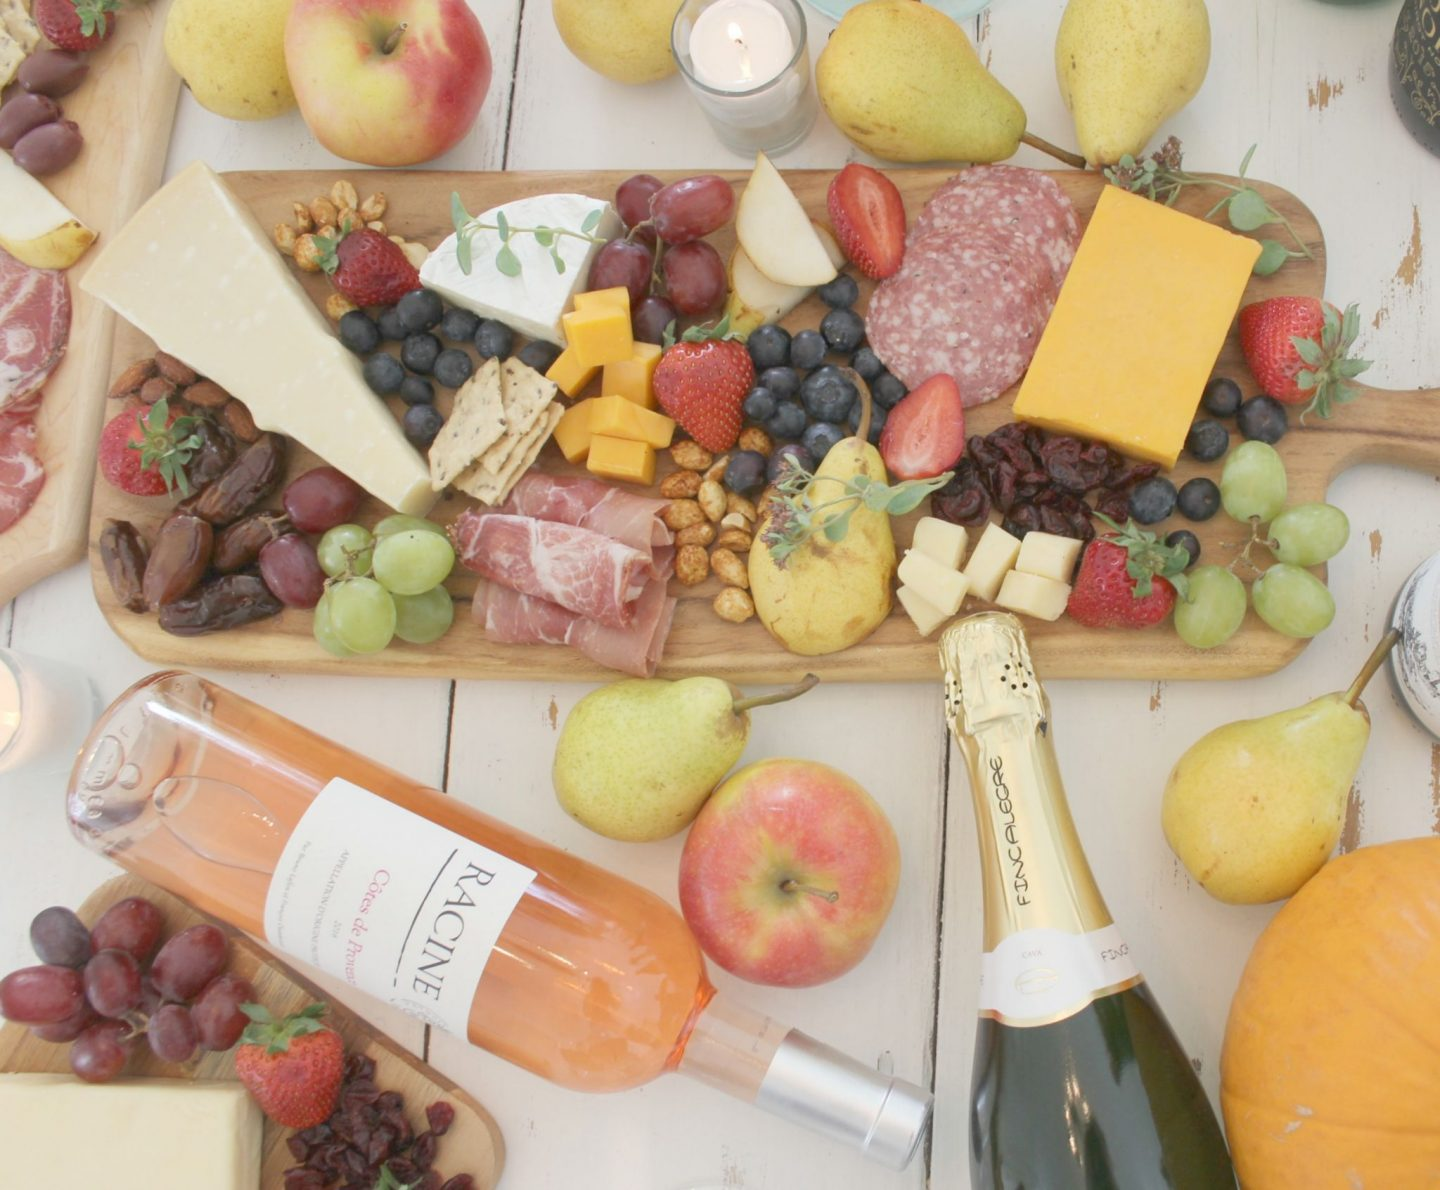 Easy Entertaining Idea With No Cooking or Baking! How to assemble a cheeseboard for a party or holiday. Let the food become the beautiful tablescape! Design/photo: Hello Lovely Studio. #hellolovelystudio #easyappetizer #easyentertaining #cheeseboard #wineandcheese #tablescape #simplerecipe #nocook #nobake #cocktailparty